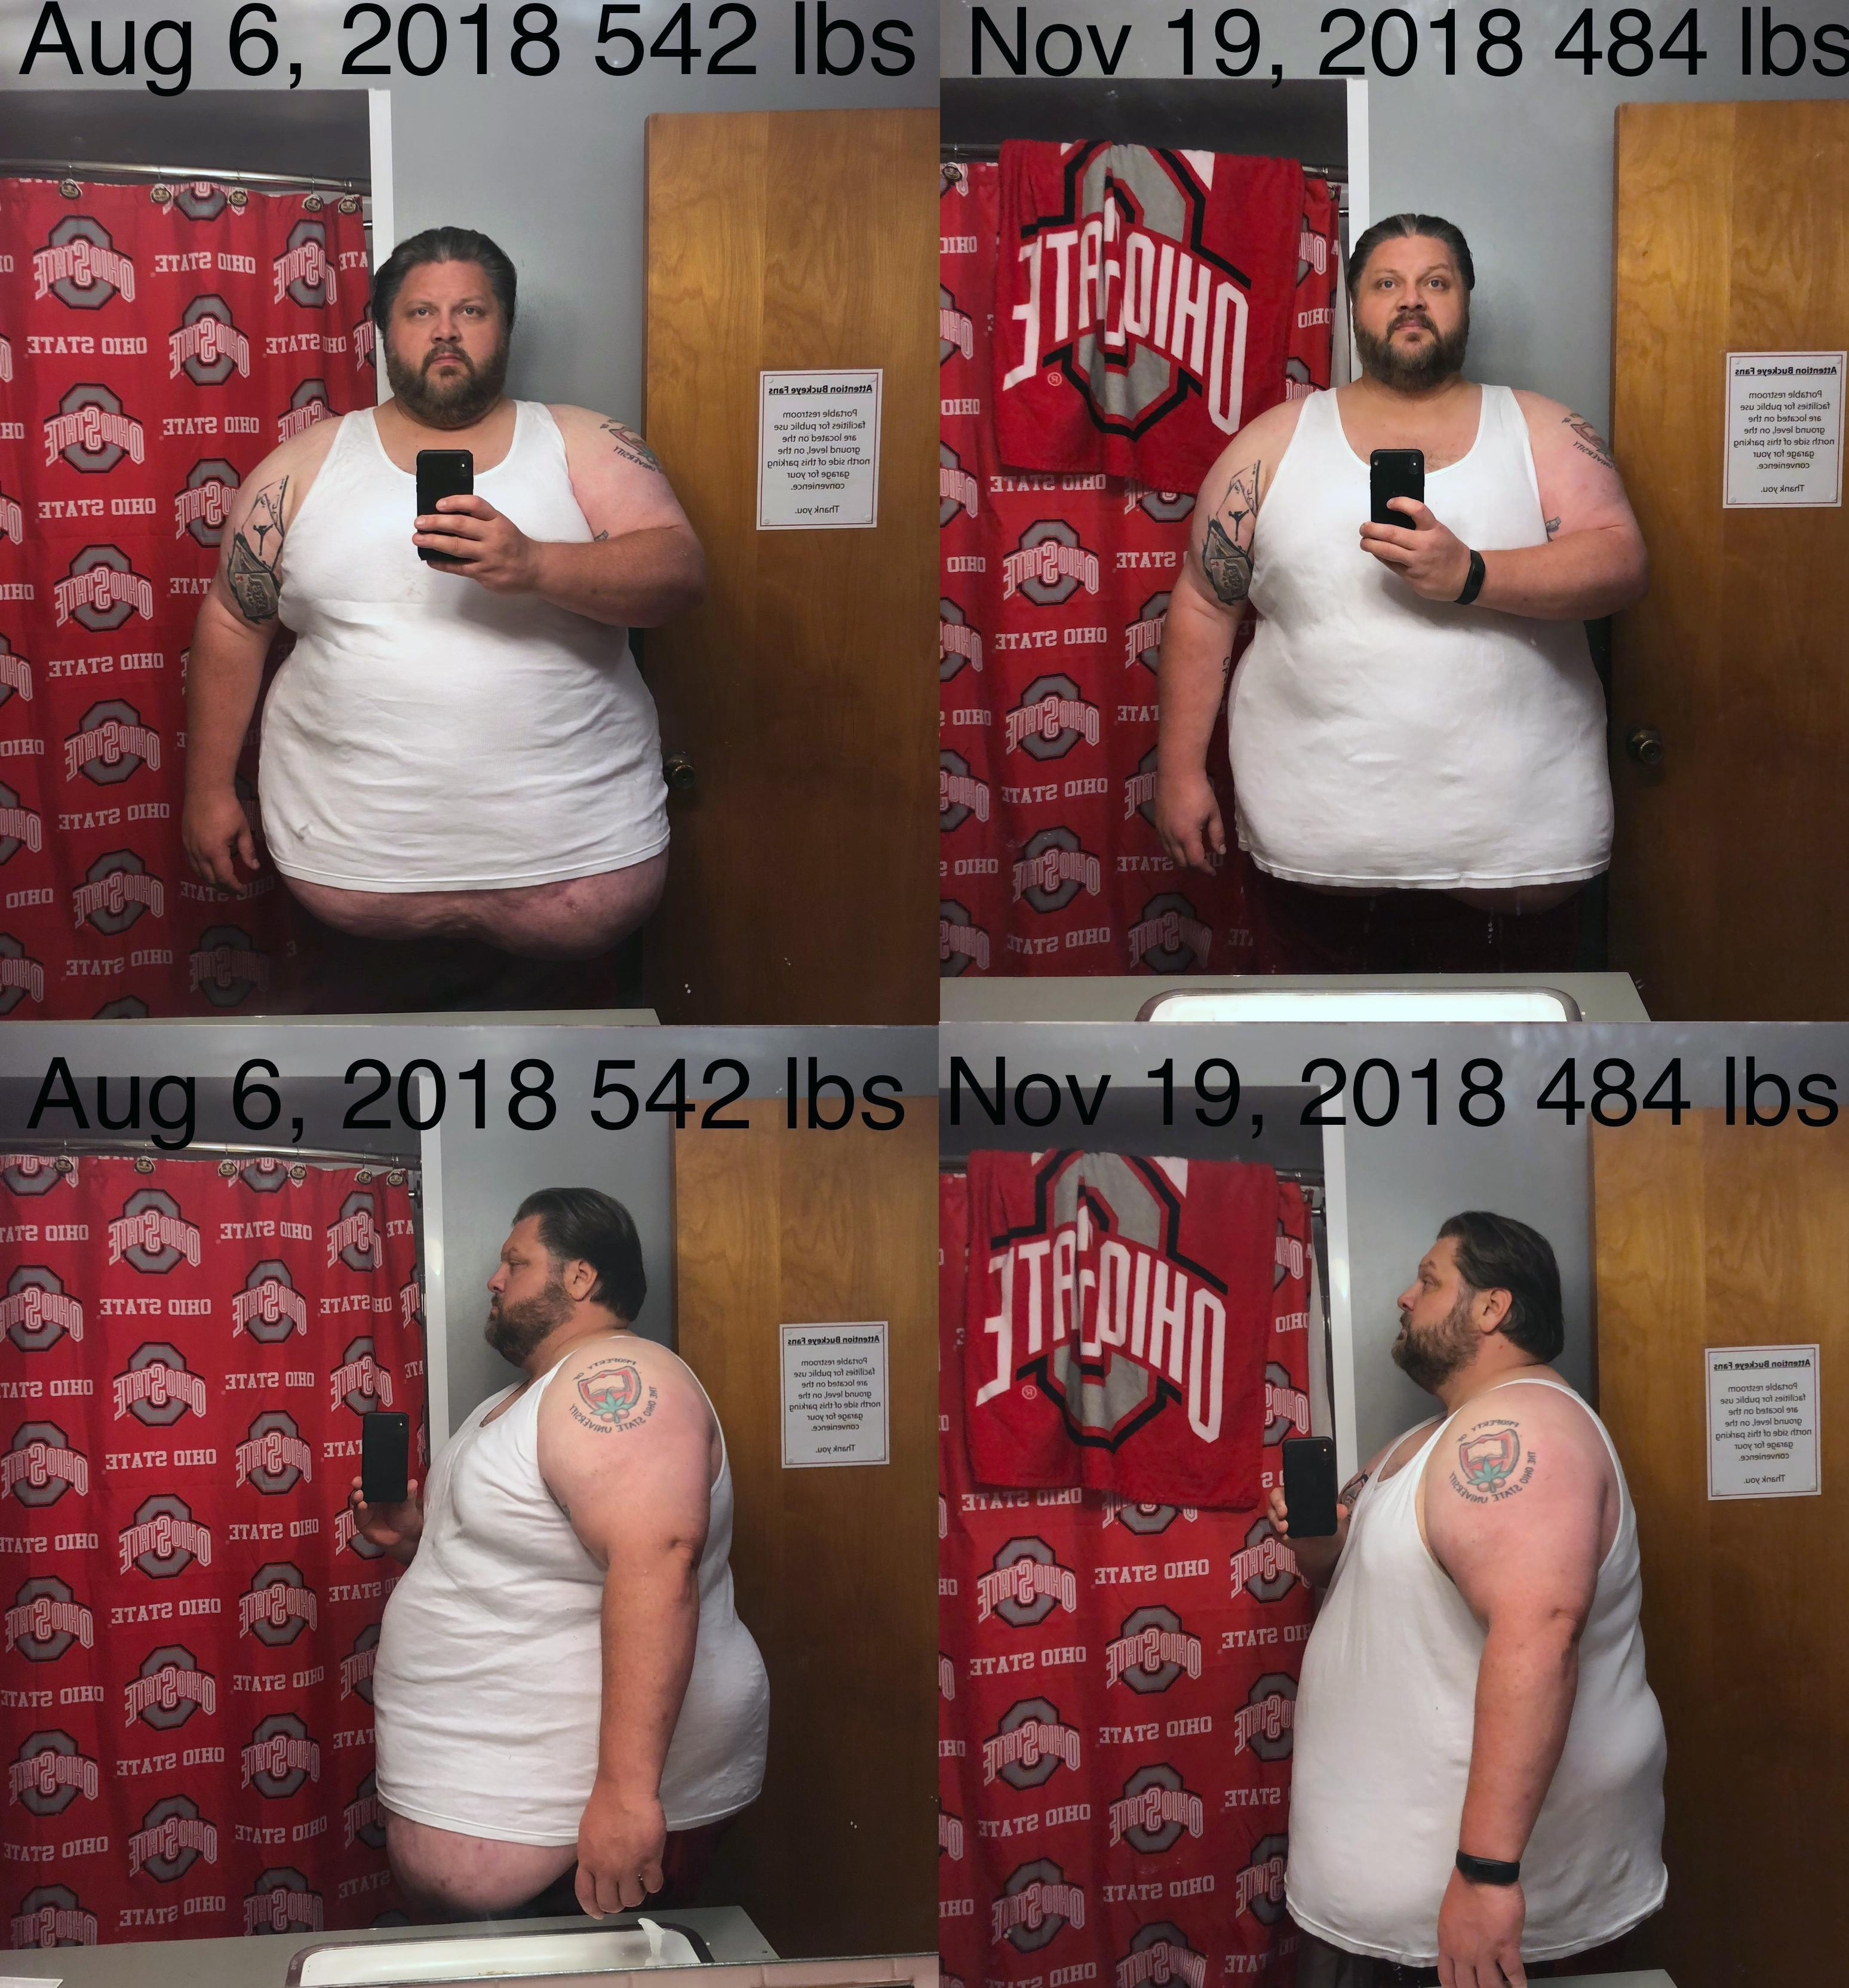 58 lbs Weight Loss Before and After 6 foot 1 Male 542 lbs to 484 lbs